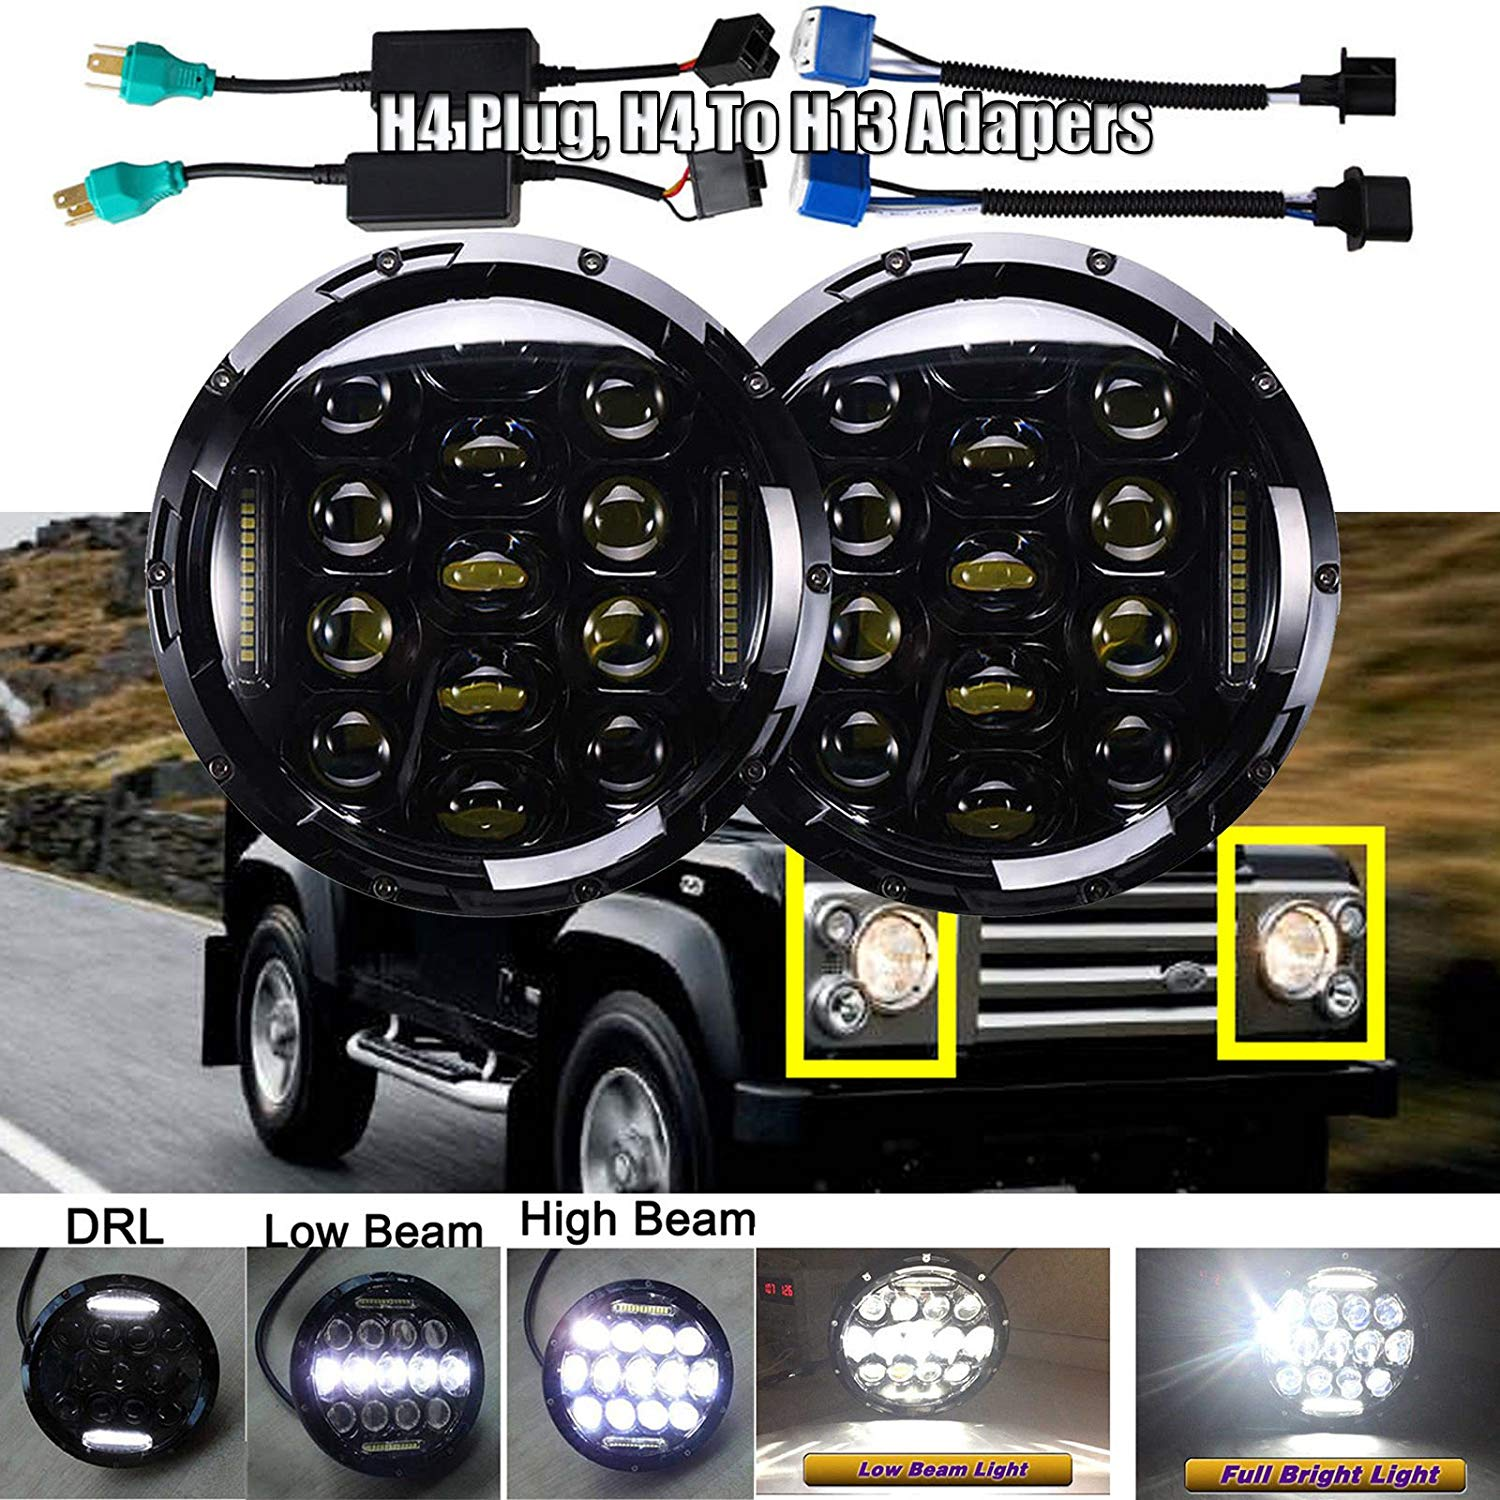 75 Watt 7 Inch Round LED Headlights Replacement Kit For Land Rover Defender 90 110 Range Rover And Land Cruiser Super Bright Sealed Beam